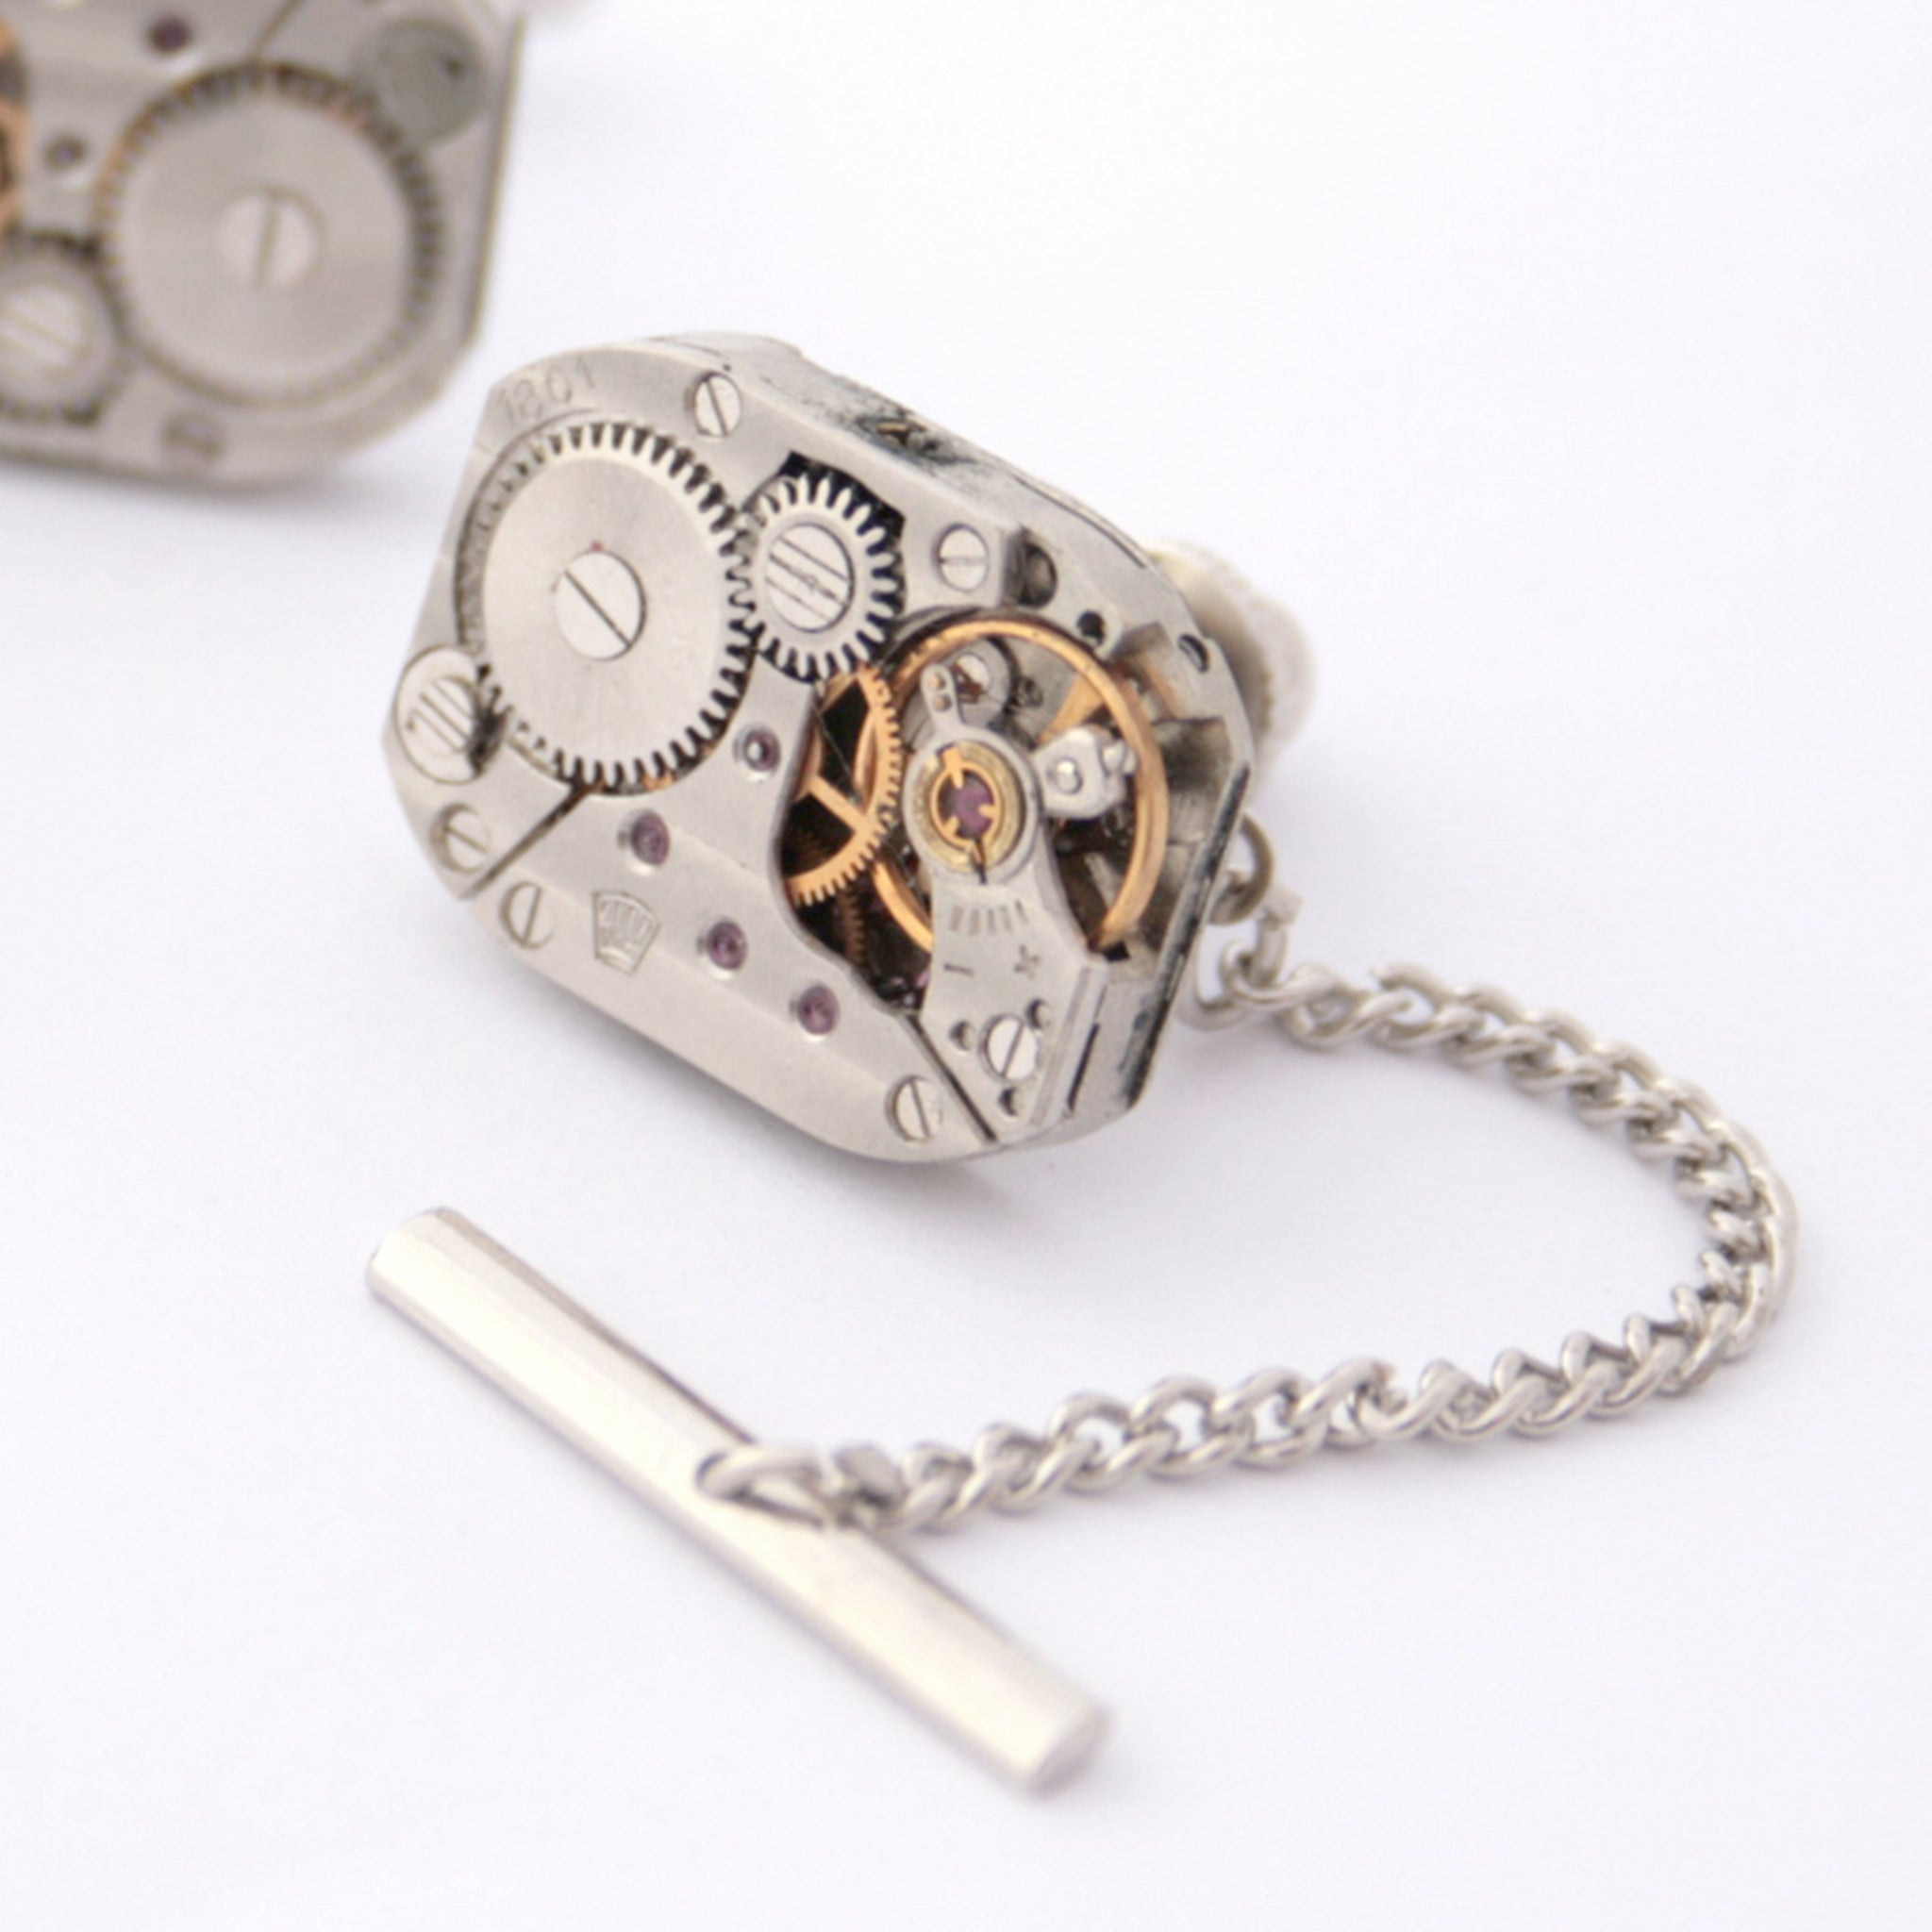 Tie tack made of watch movement